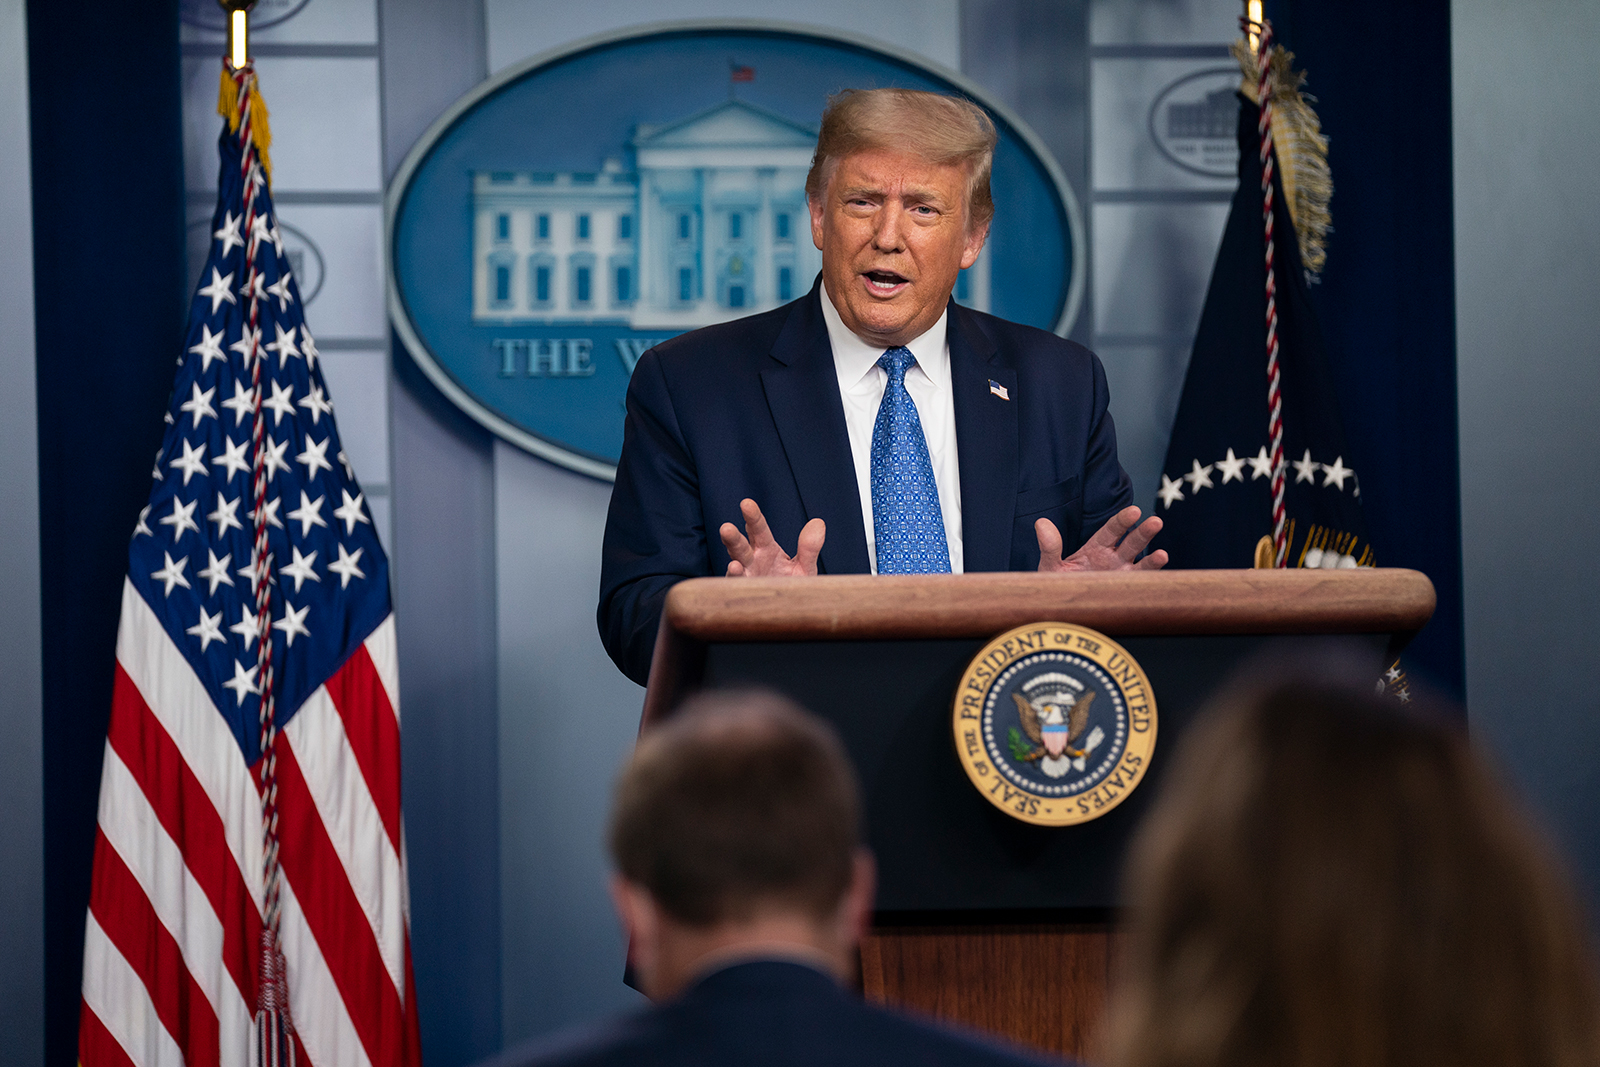 President Donald Trump speaks during a news conference at the White House in Washington, DC on July 22.